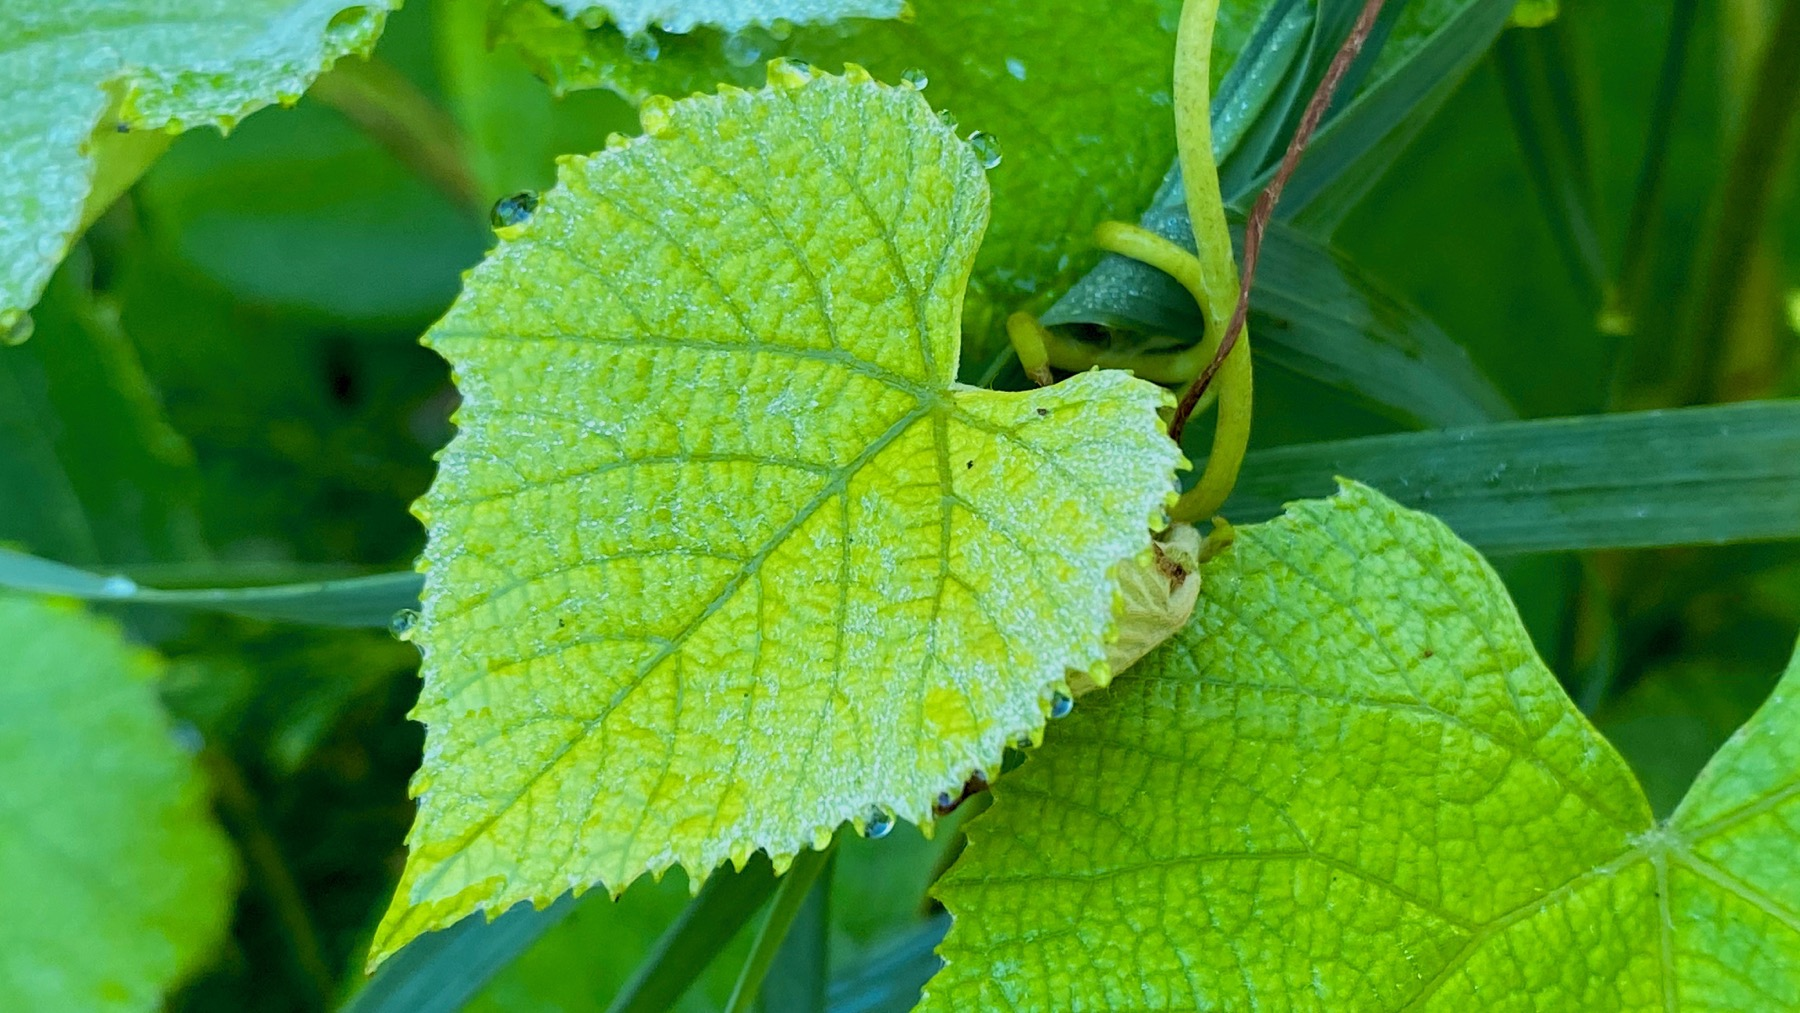 Grape leaf tendril